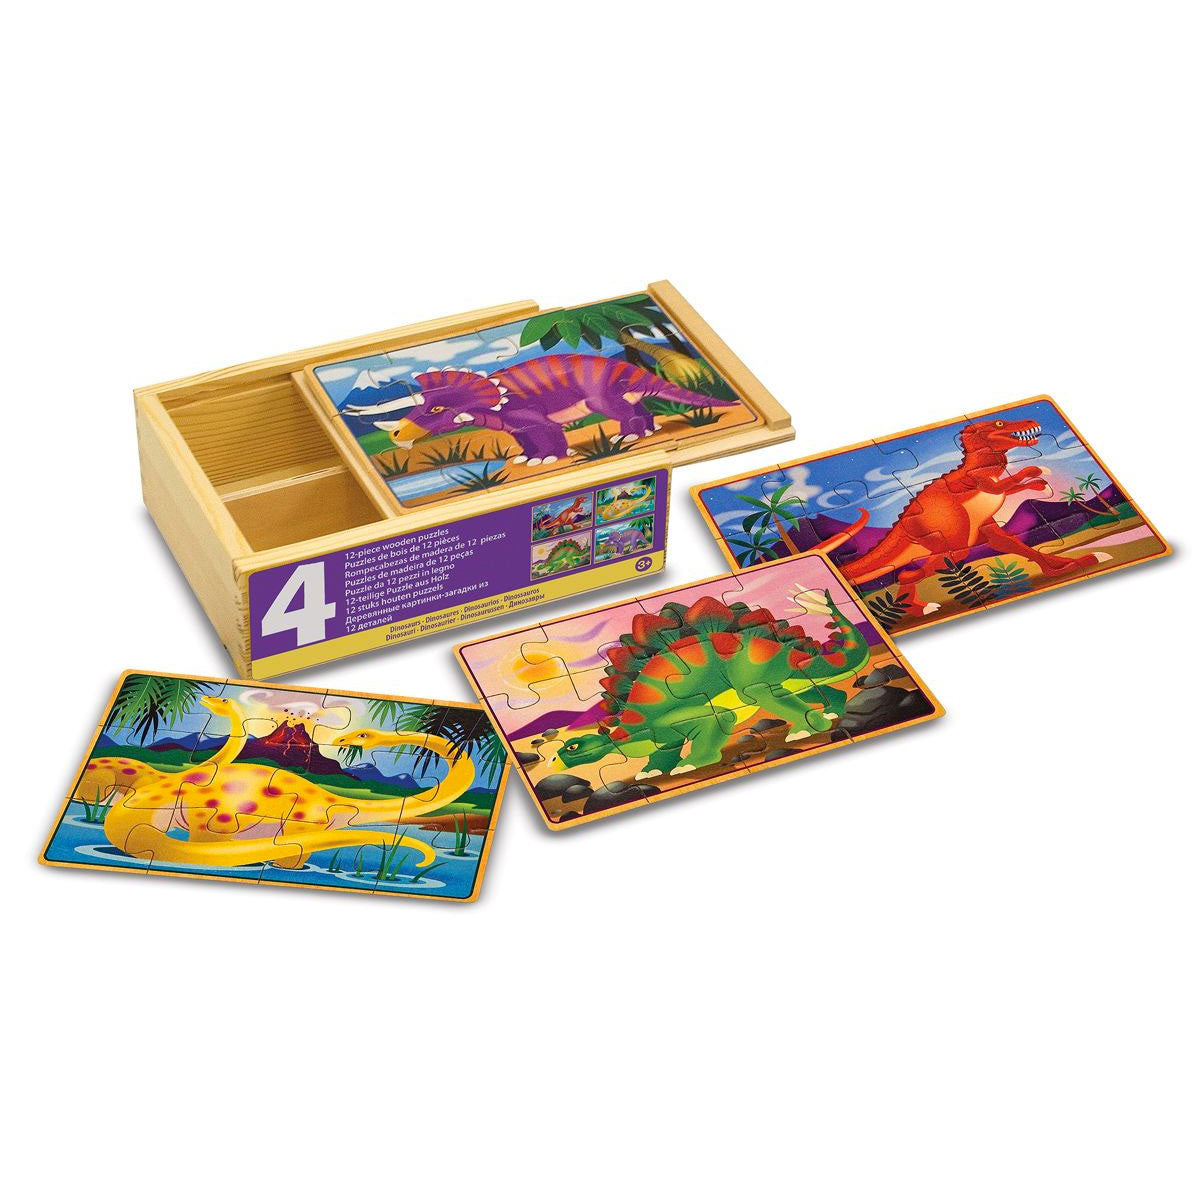 Jigsaw Puzzles in a Box - Set of 4 Melissa and Doug Puzzles Dinosaurs at Little Earth Nest Eco Shop